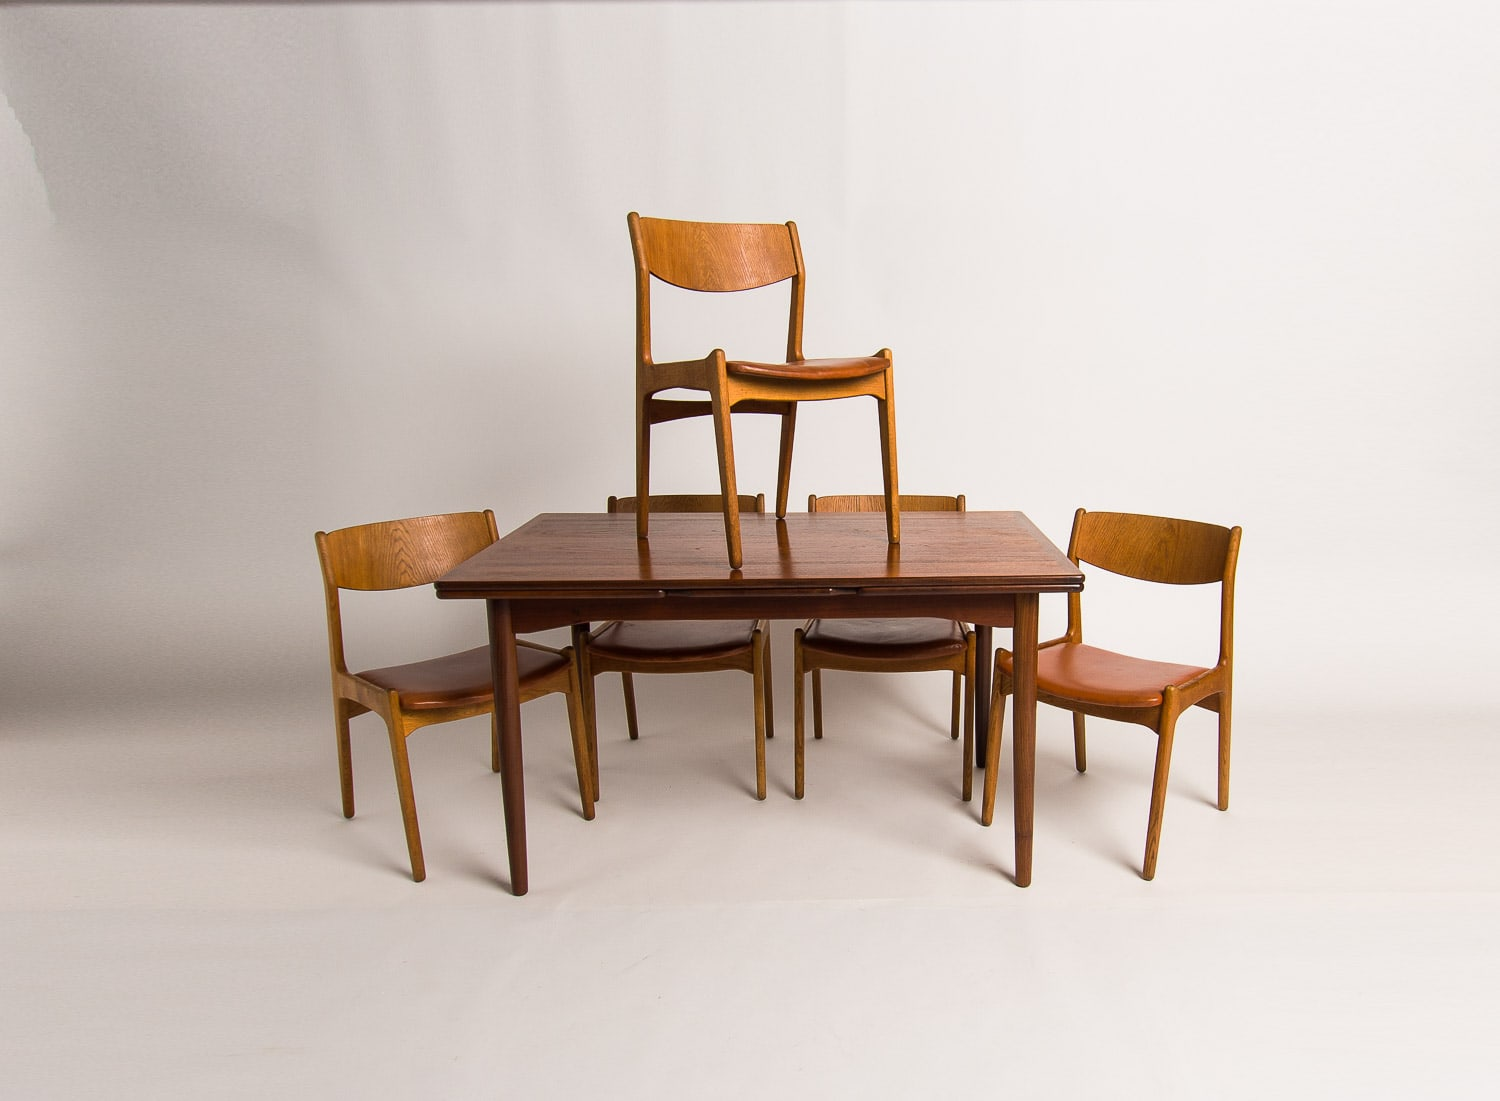 Danish Design dining chairs table mid century London 1950's